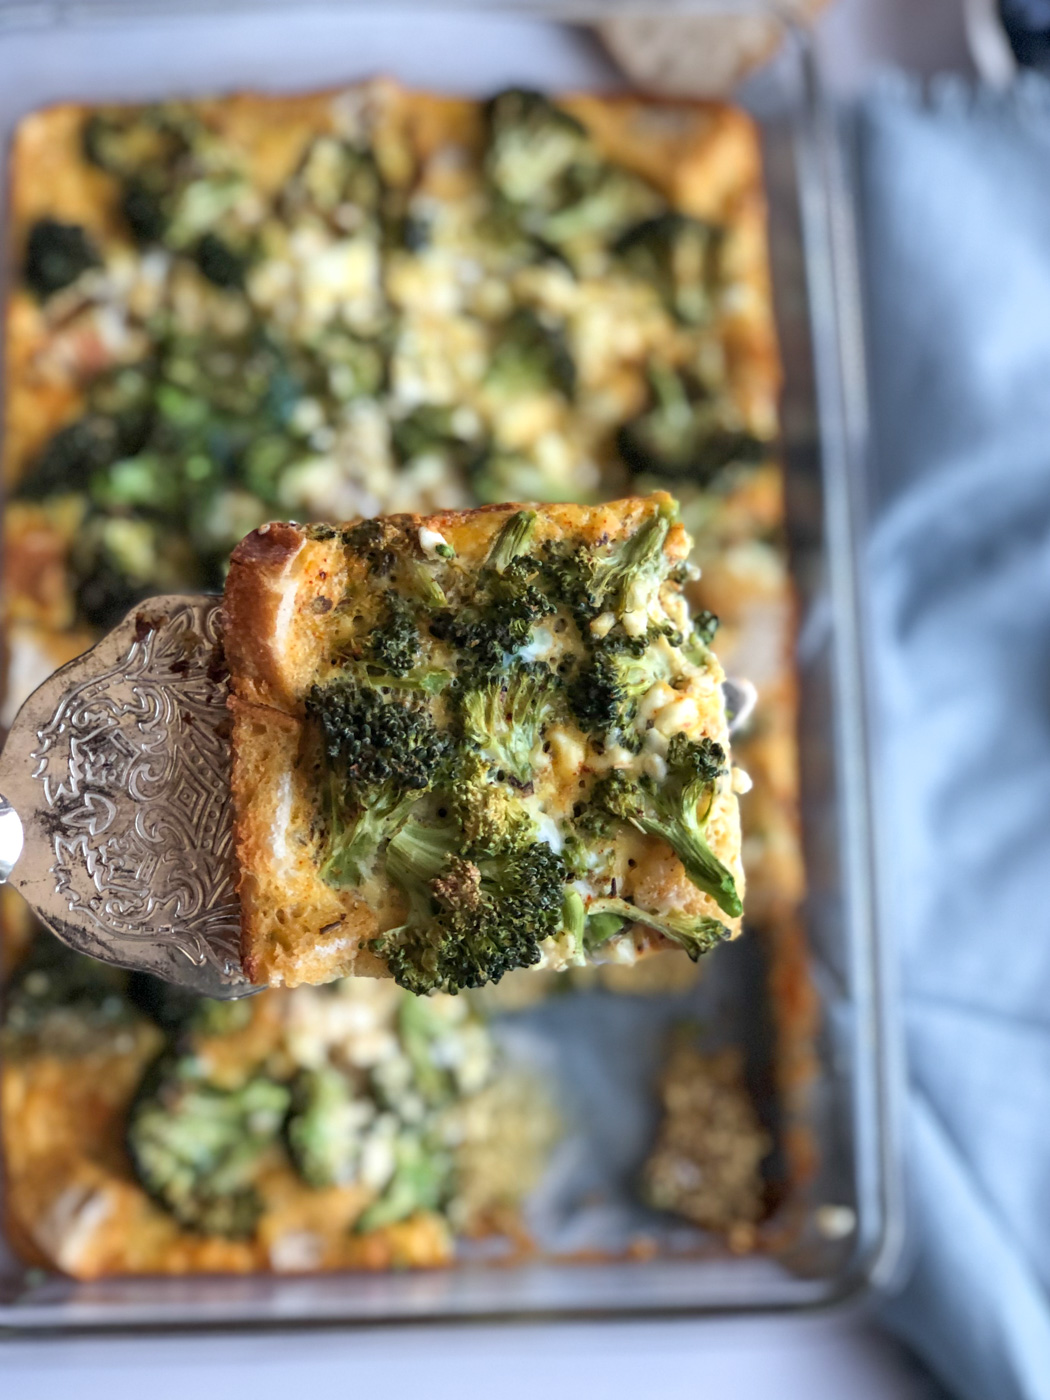 Healthy Overnight Broccoli and Egg Breakfast Casserole